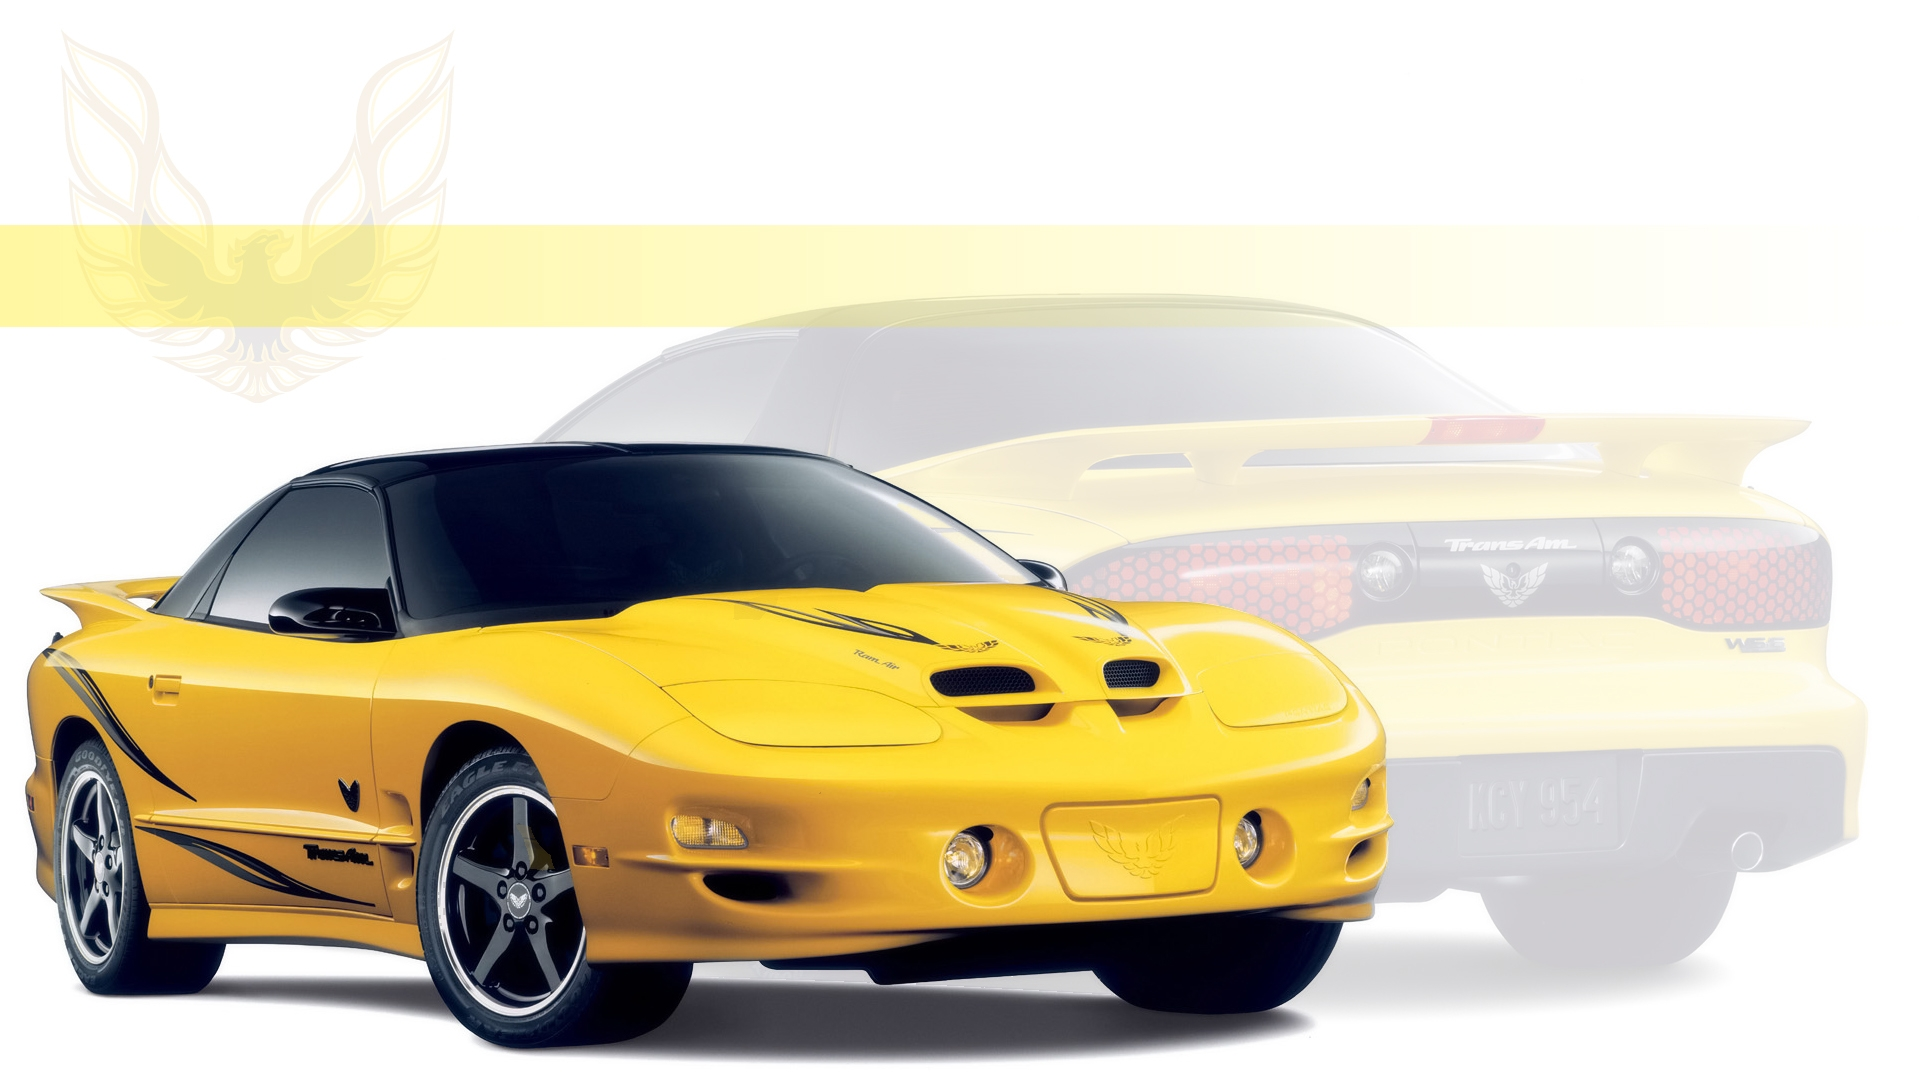 Pontiac Firebird Trans Am Hd Wallpaper